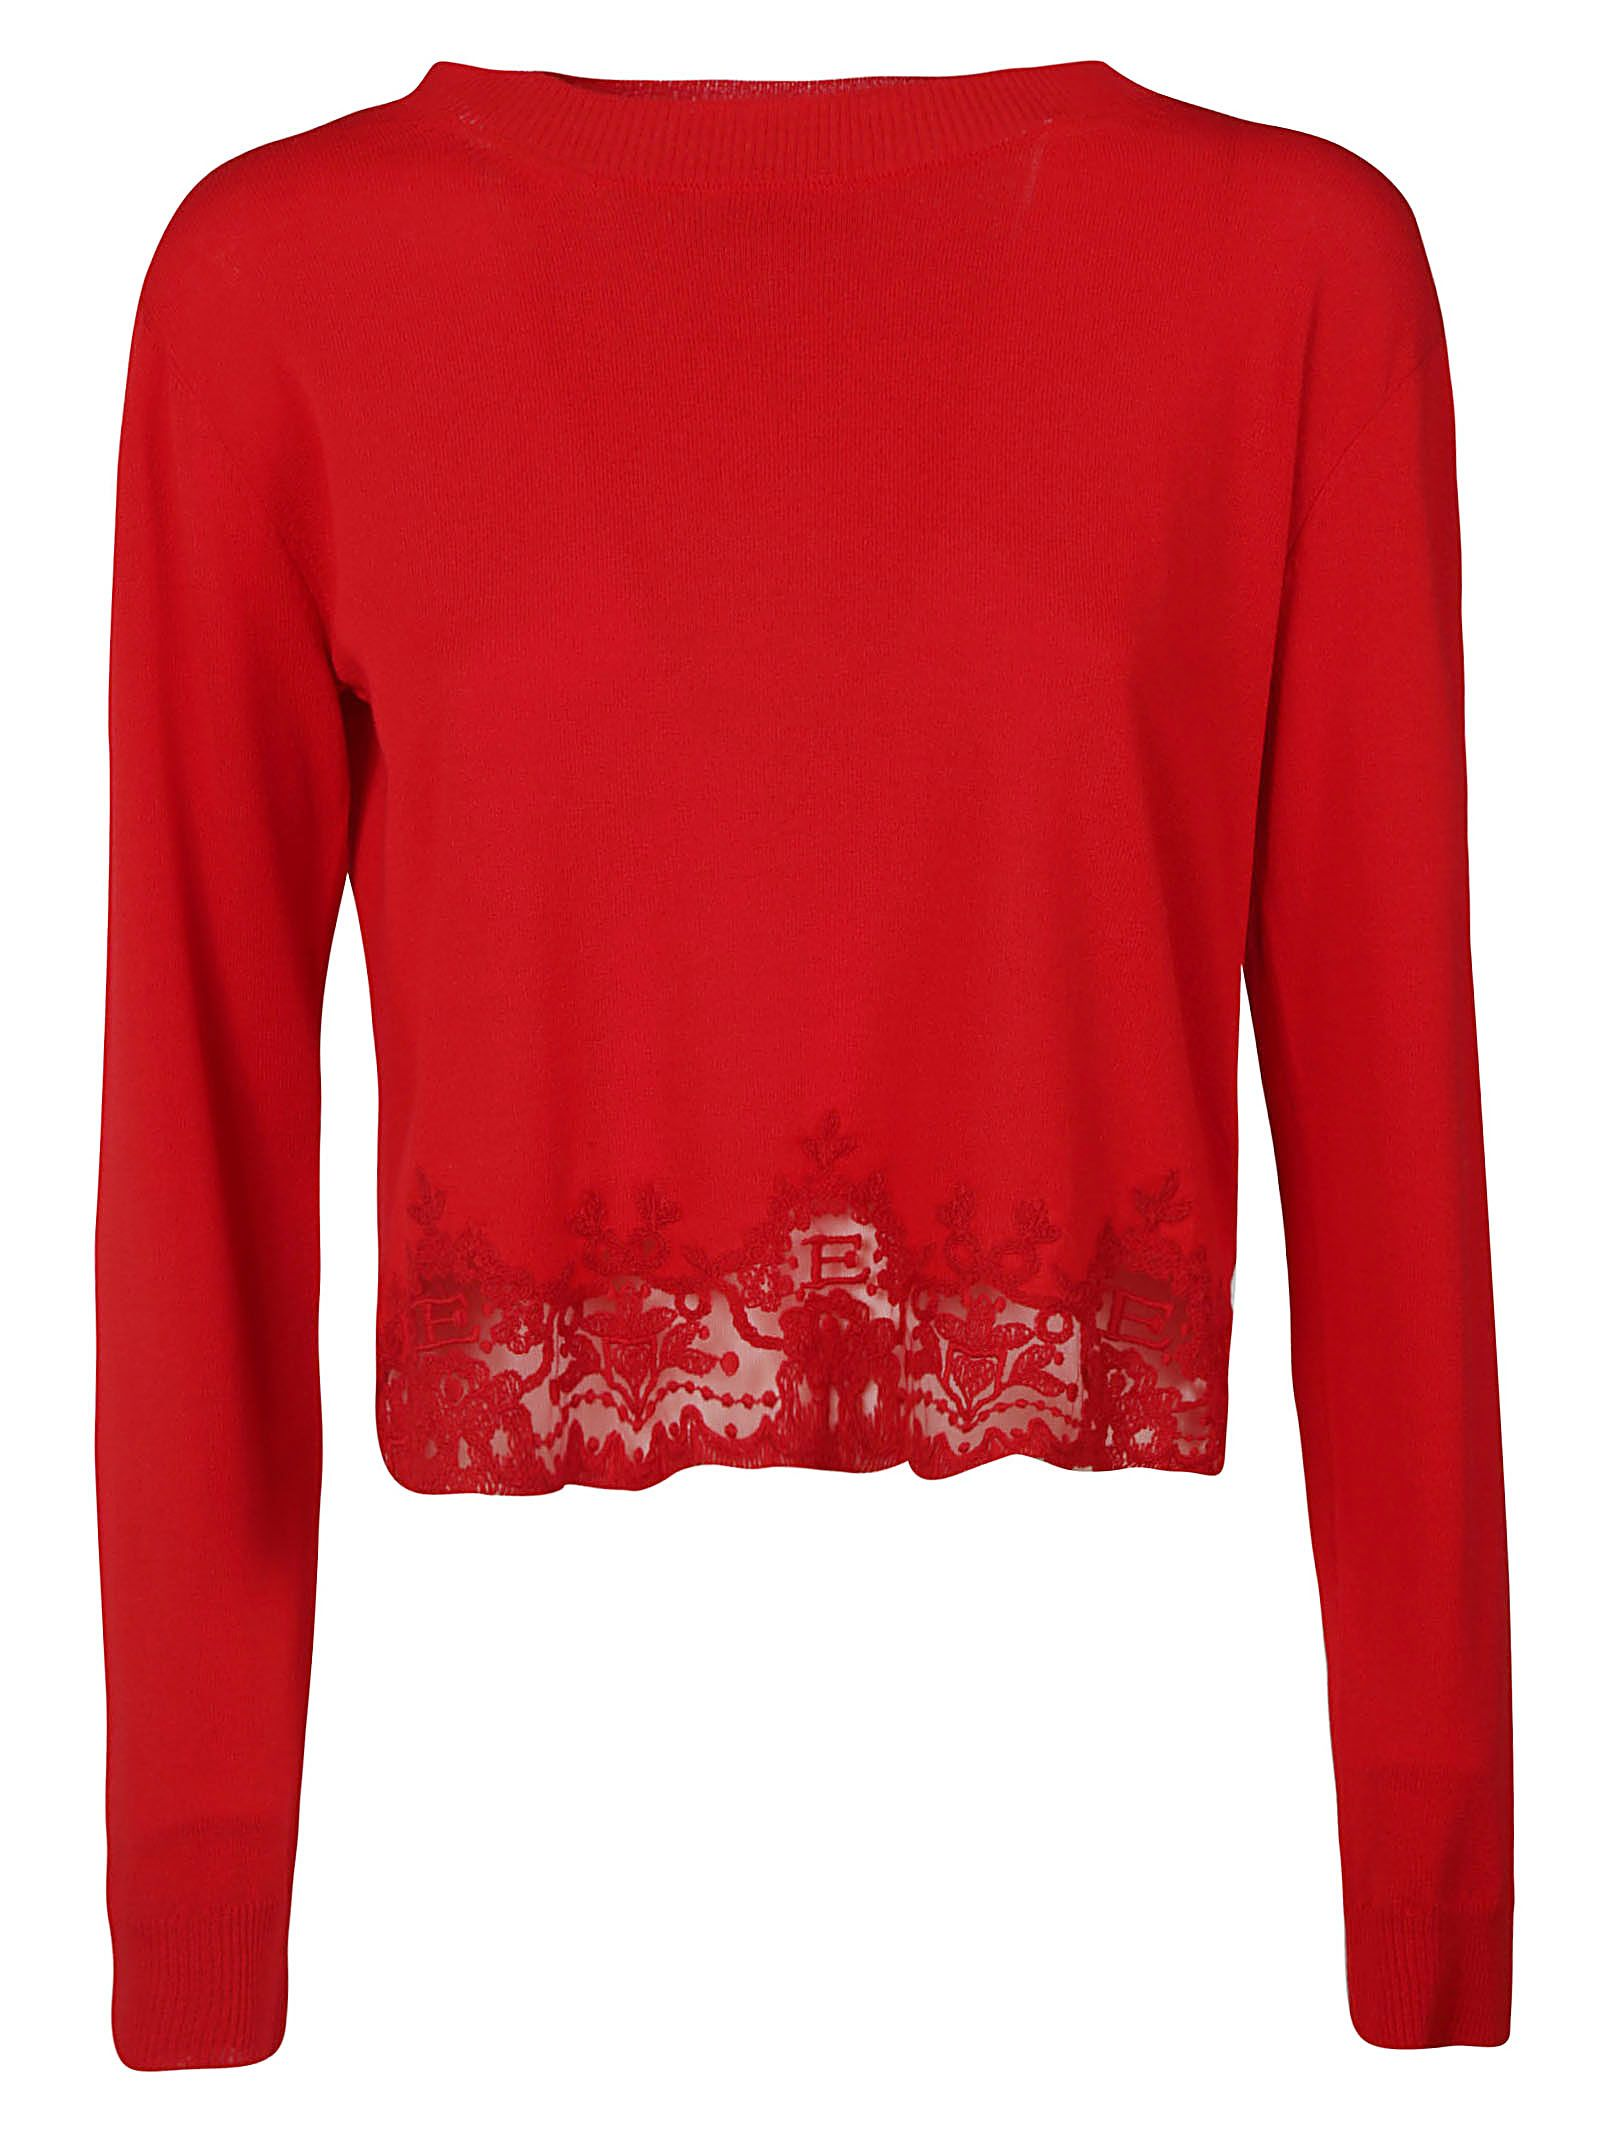 ERMANNO SCERVINO CROPPED LACE DETAIL SWEATER